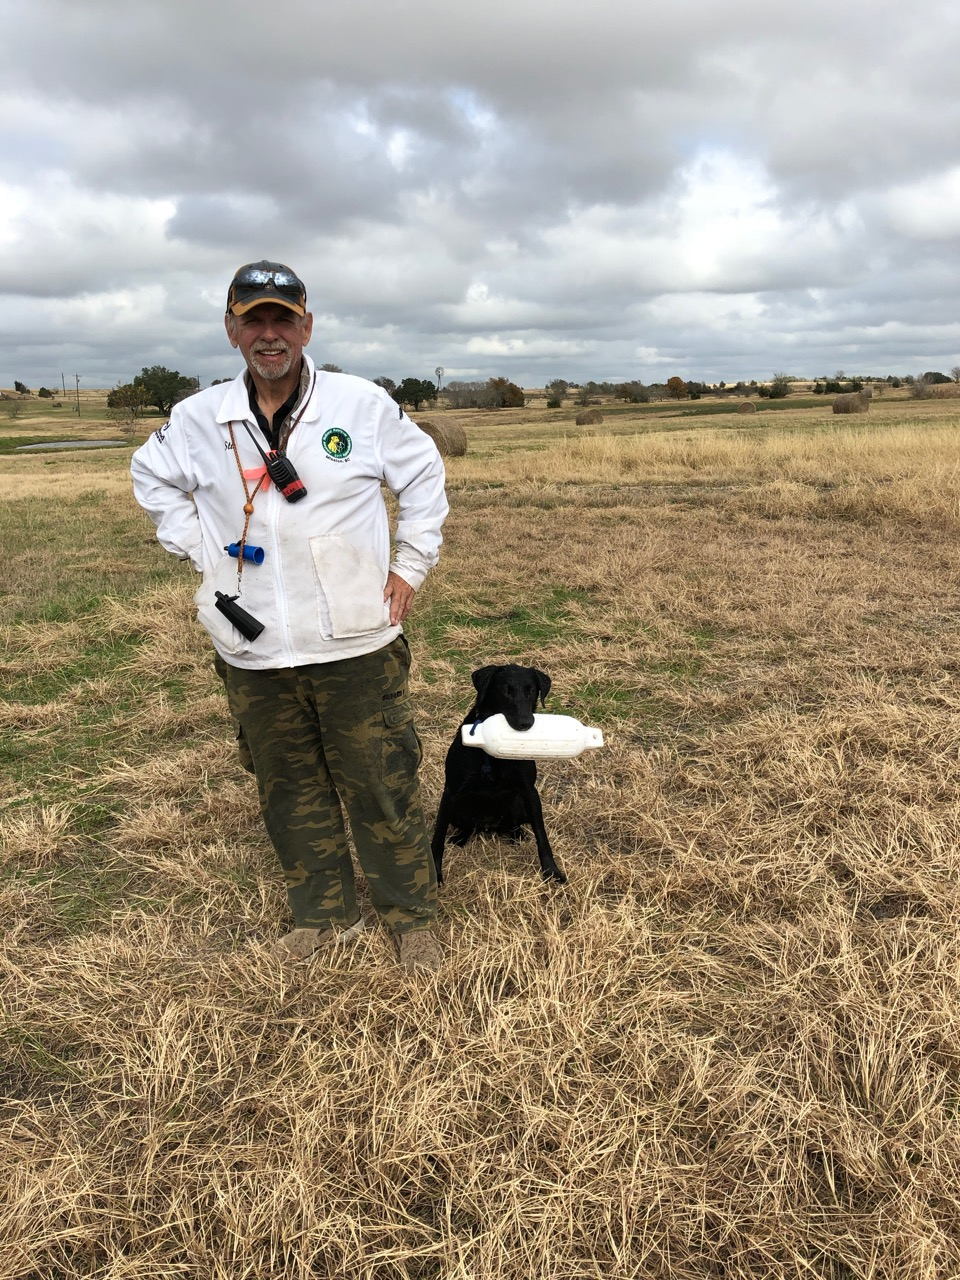 Stu Mead Club Mead Labradors standing in field with Black Labrador Retriever